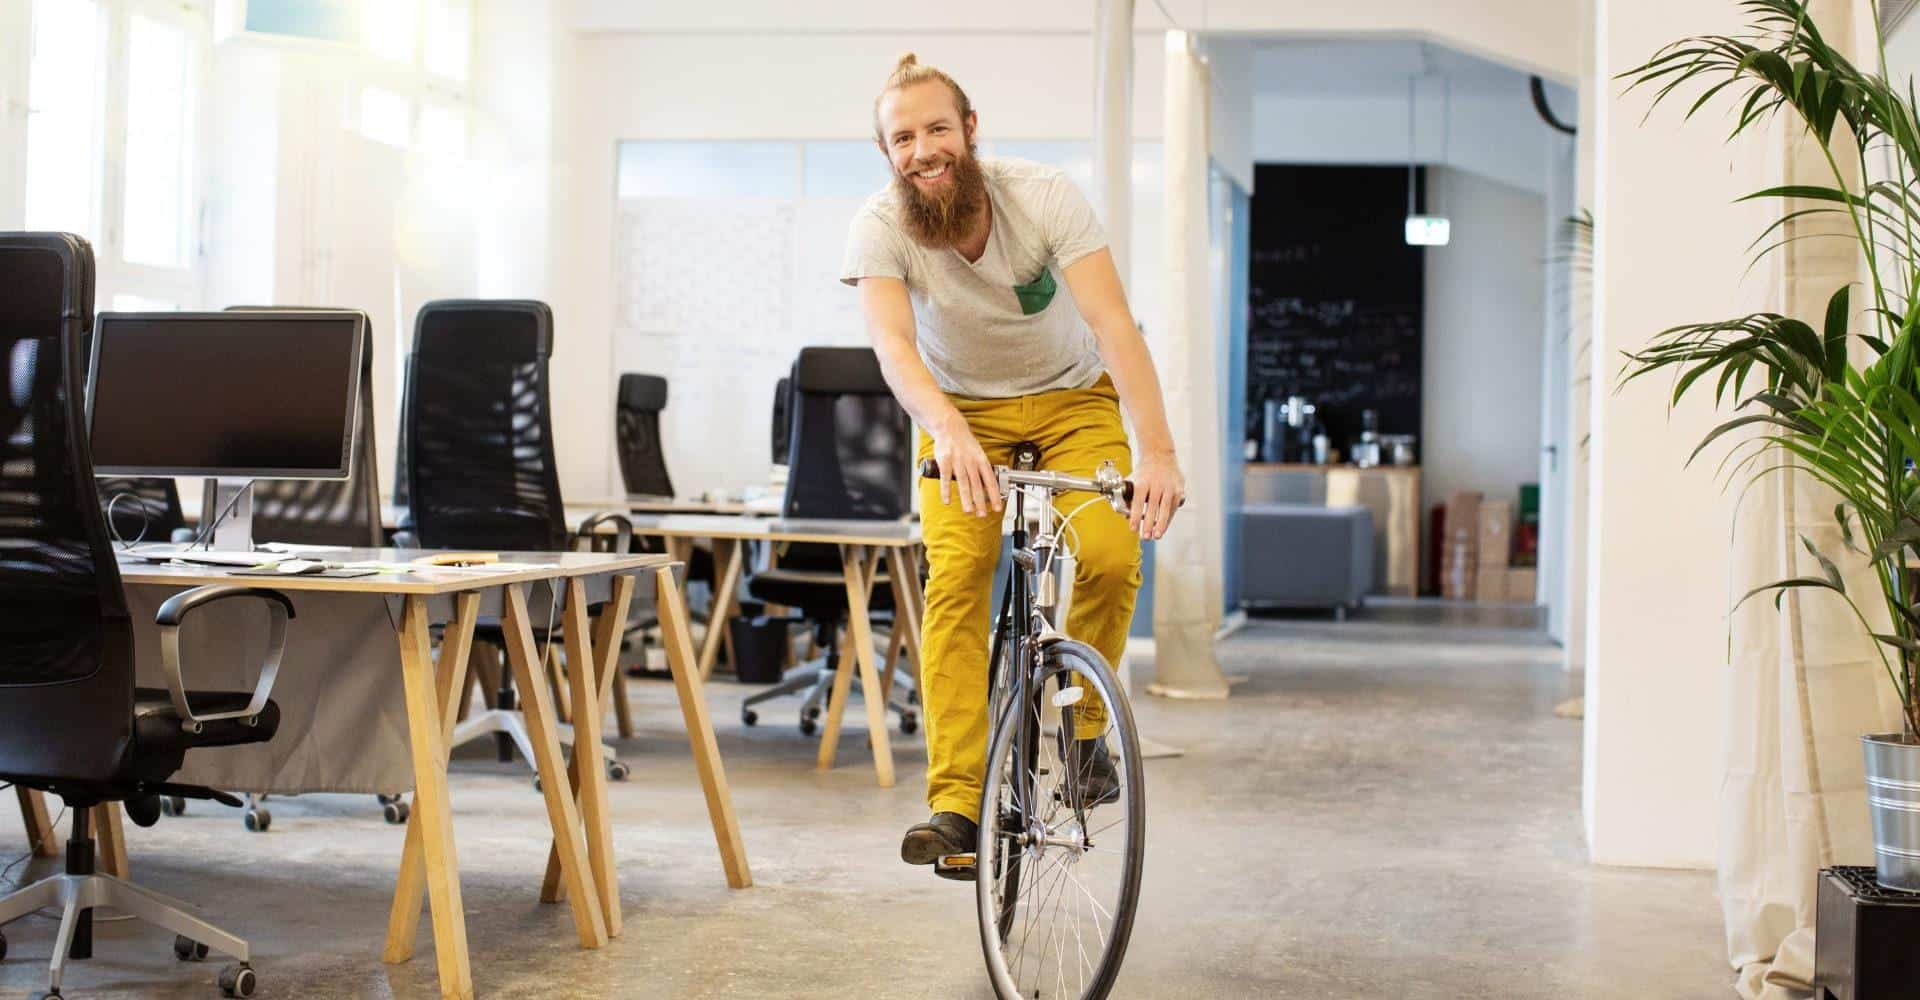 Bearded man smiling while riding a bike in an office